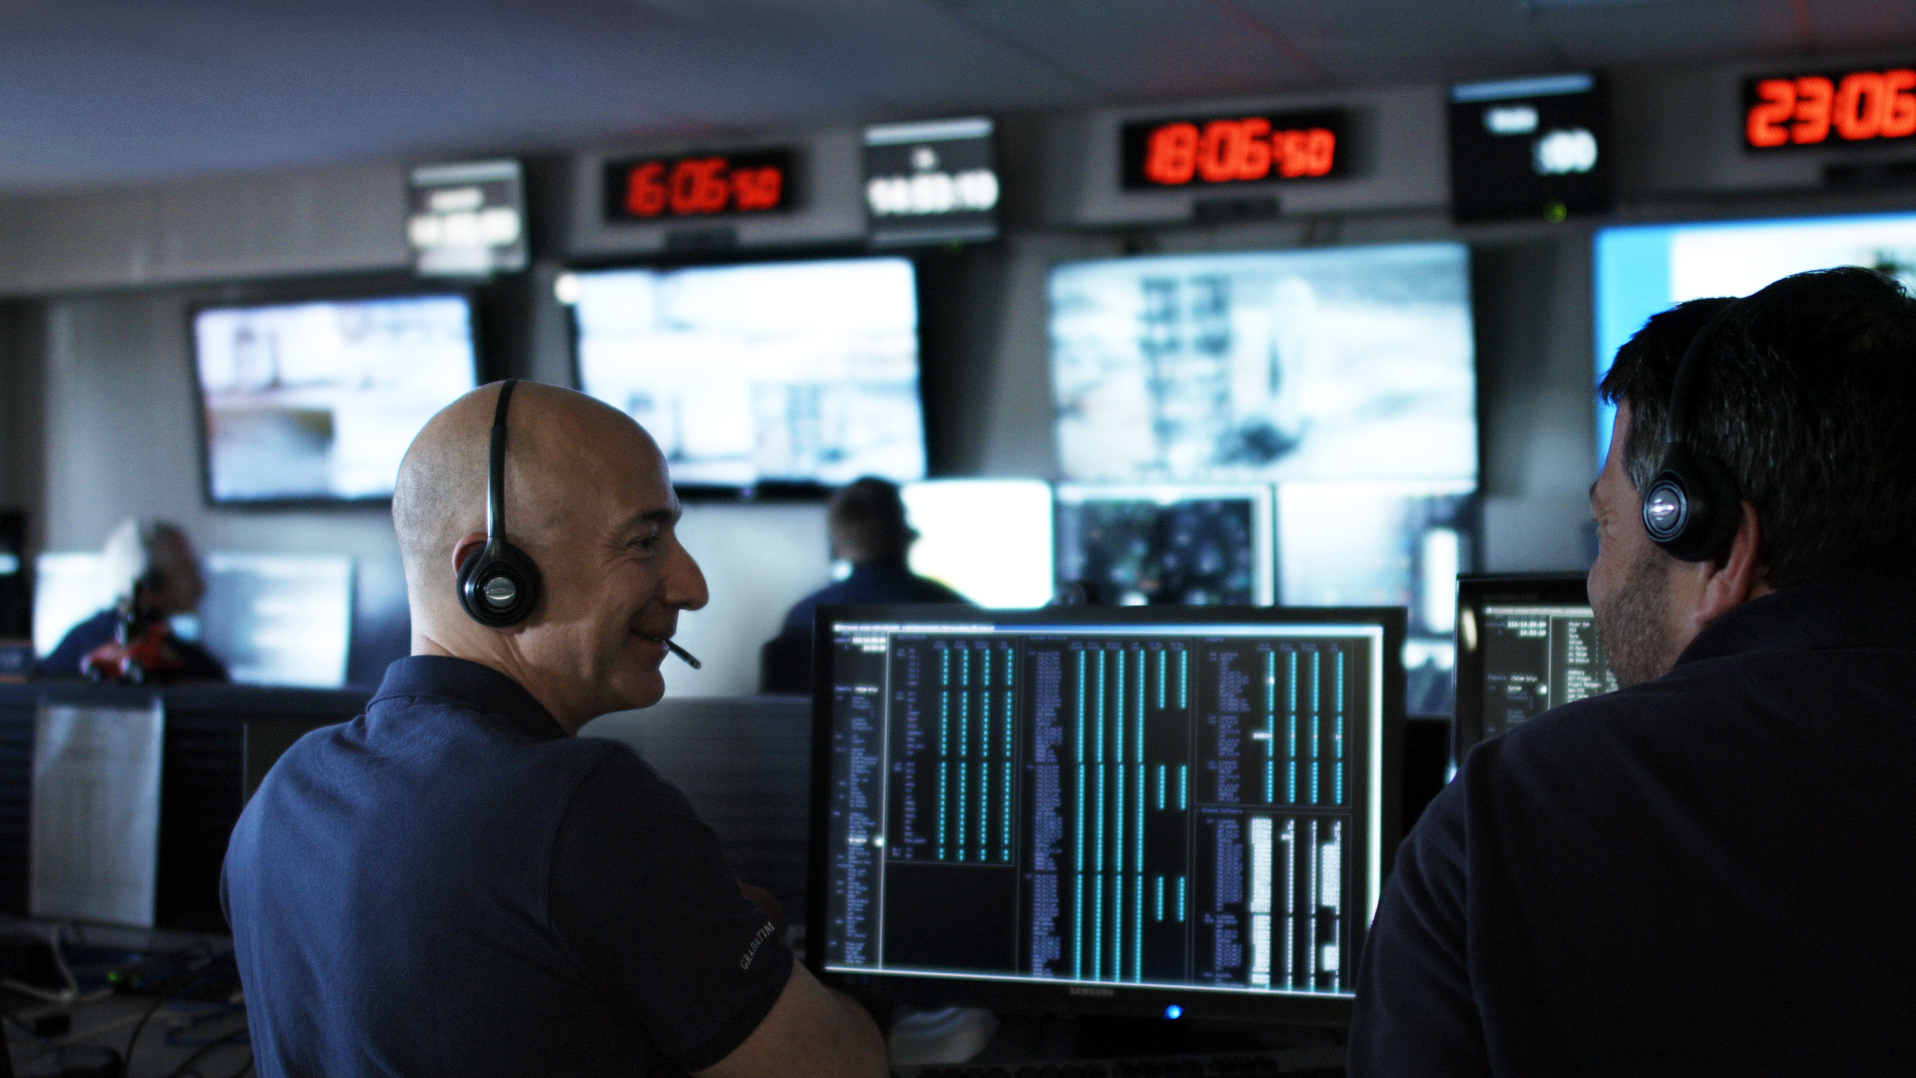 Jeff Bezos in the Blue Origin command center.